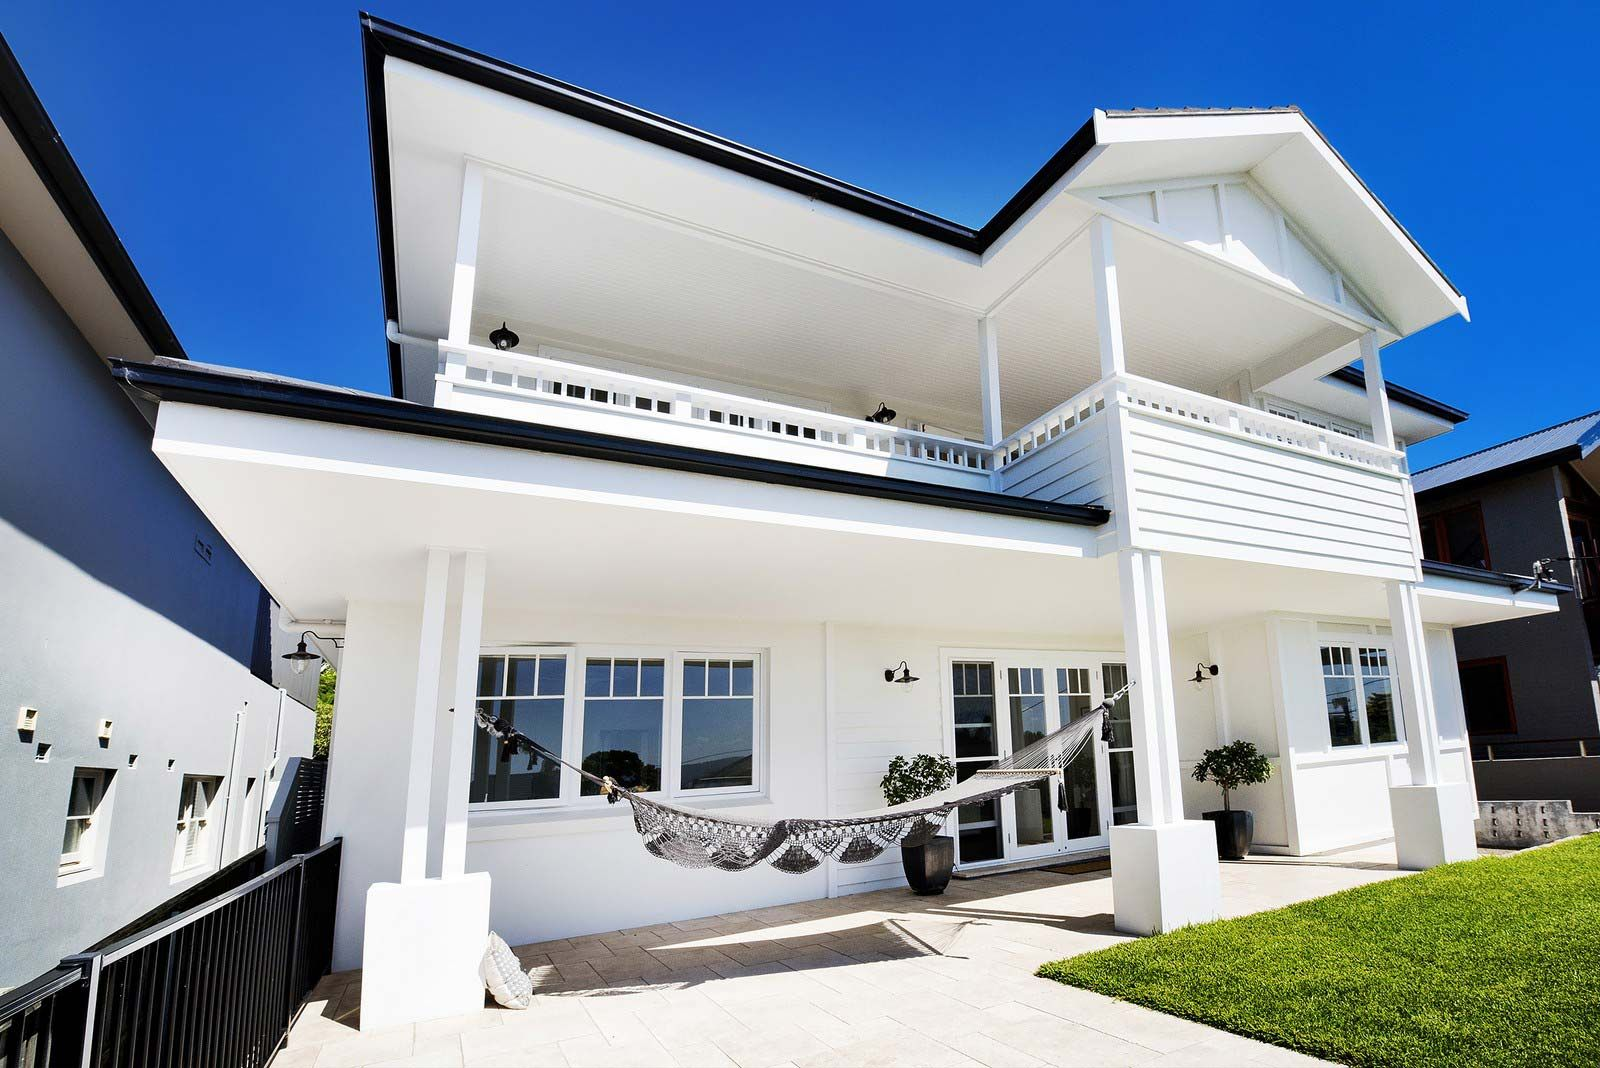 hamptons style homes - Google Search | Hamptons Porch | Pinterest ...